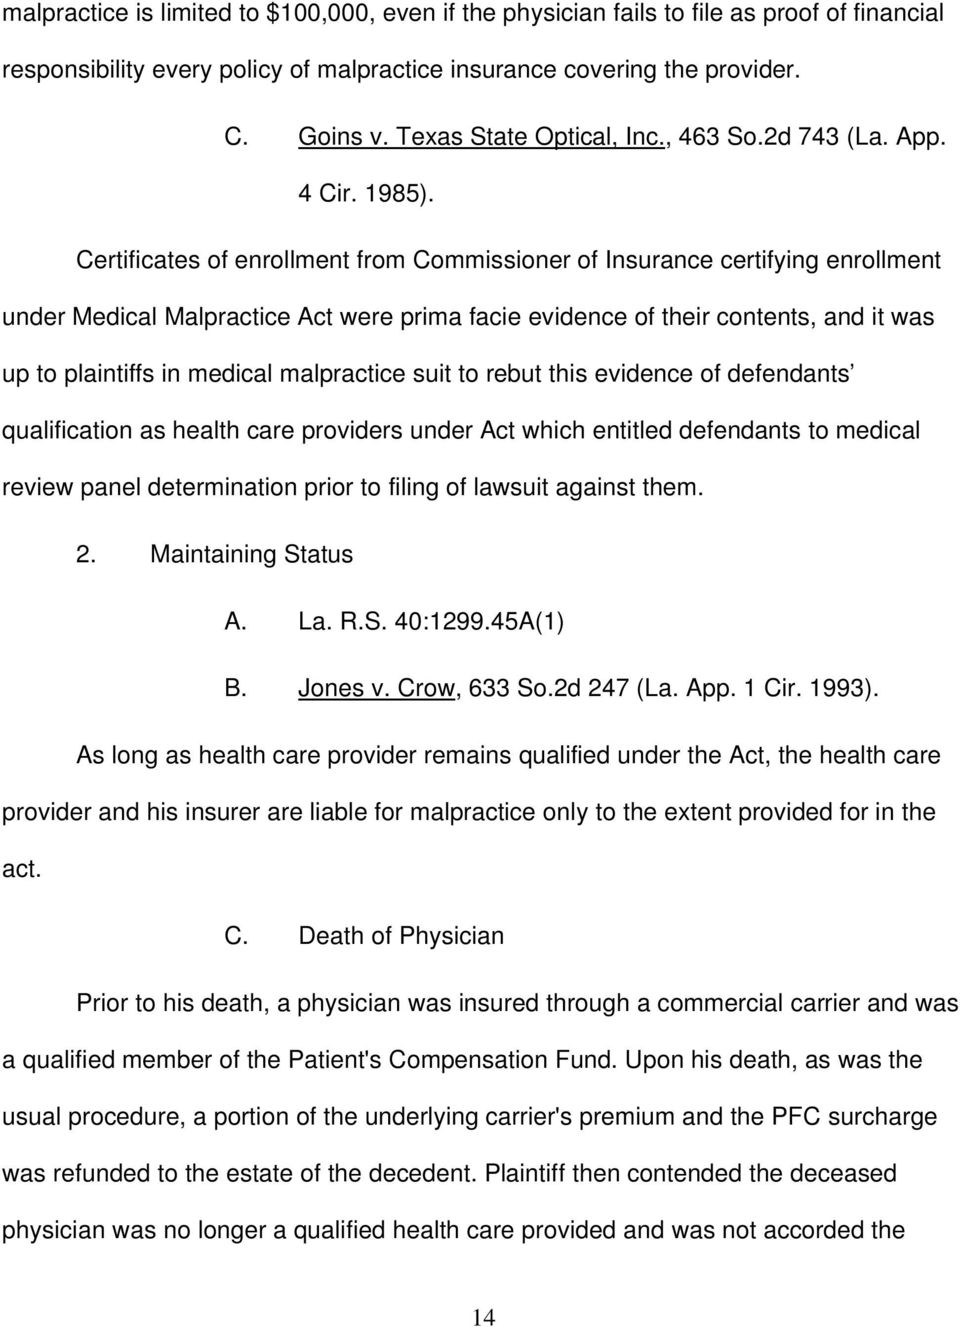 Certificates of enrollment from Commissioner of Insurance certifying enrollment under Medical Malpractice Act were prima facie evidence of their contents, and it was up to plaintiffs in medical